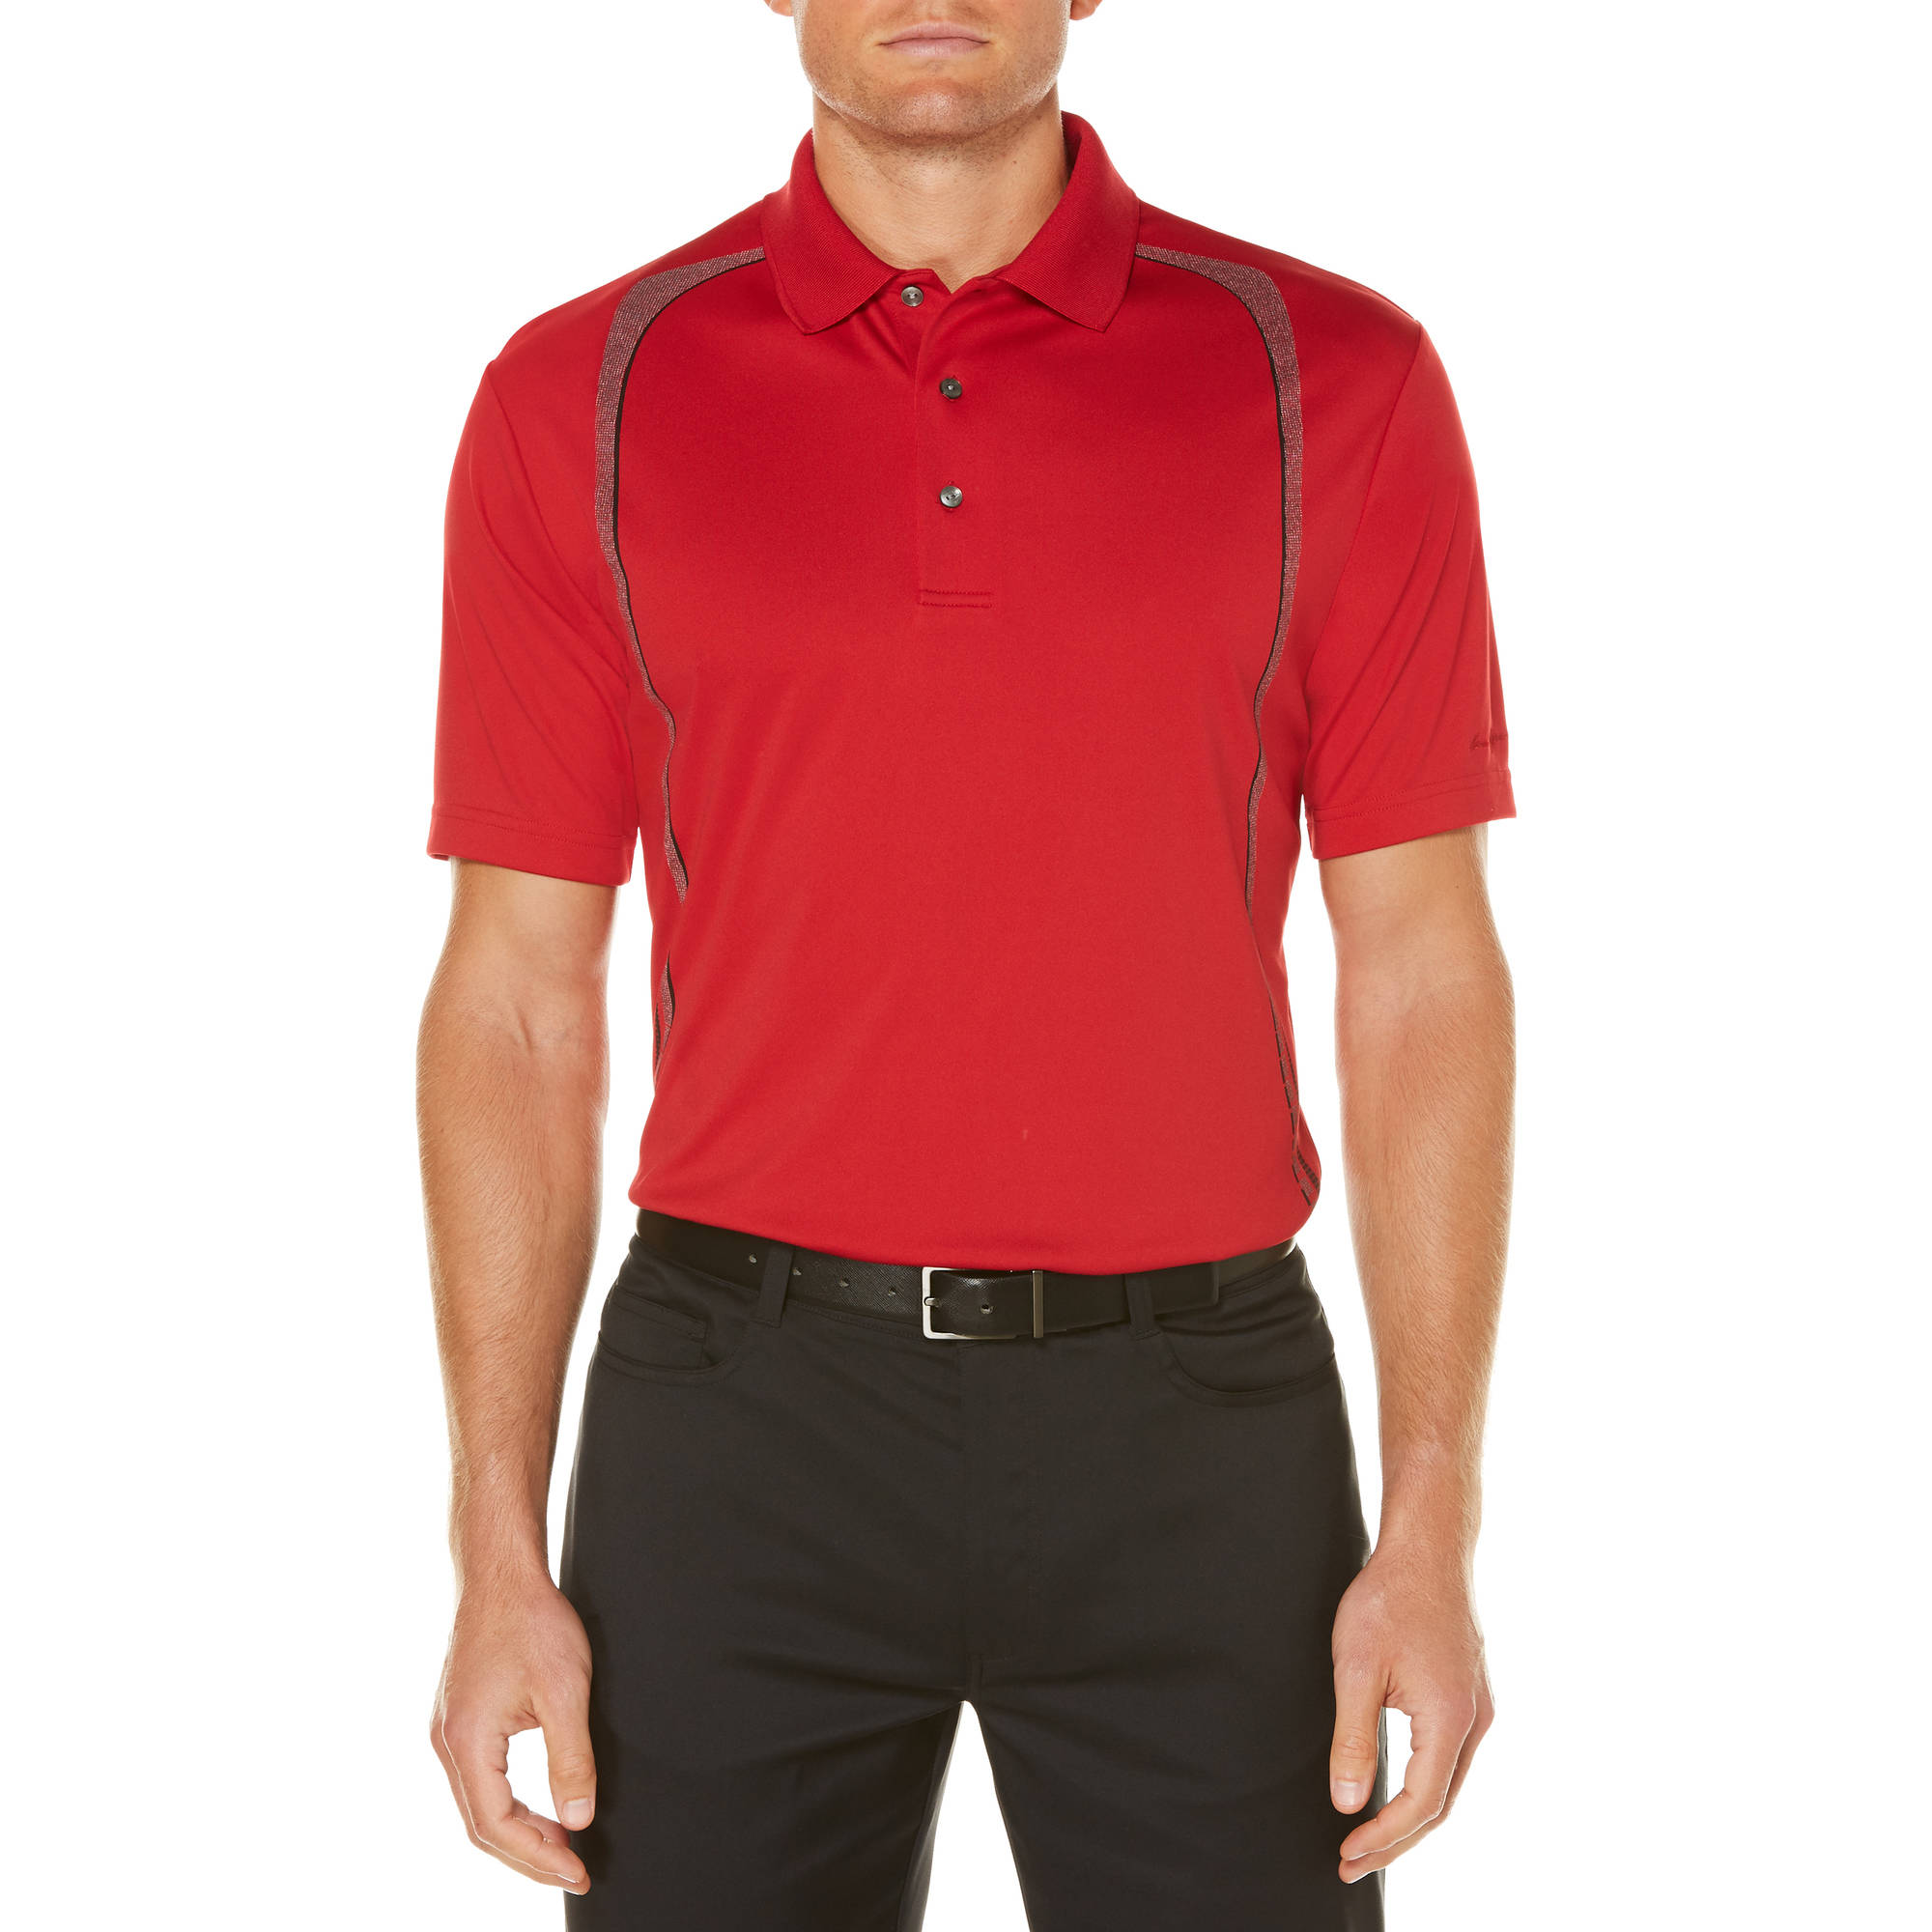 Big Men's Performance Short Sleeve Paper Texture Printed Stripe Golf Polo by